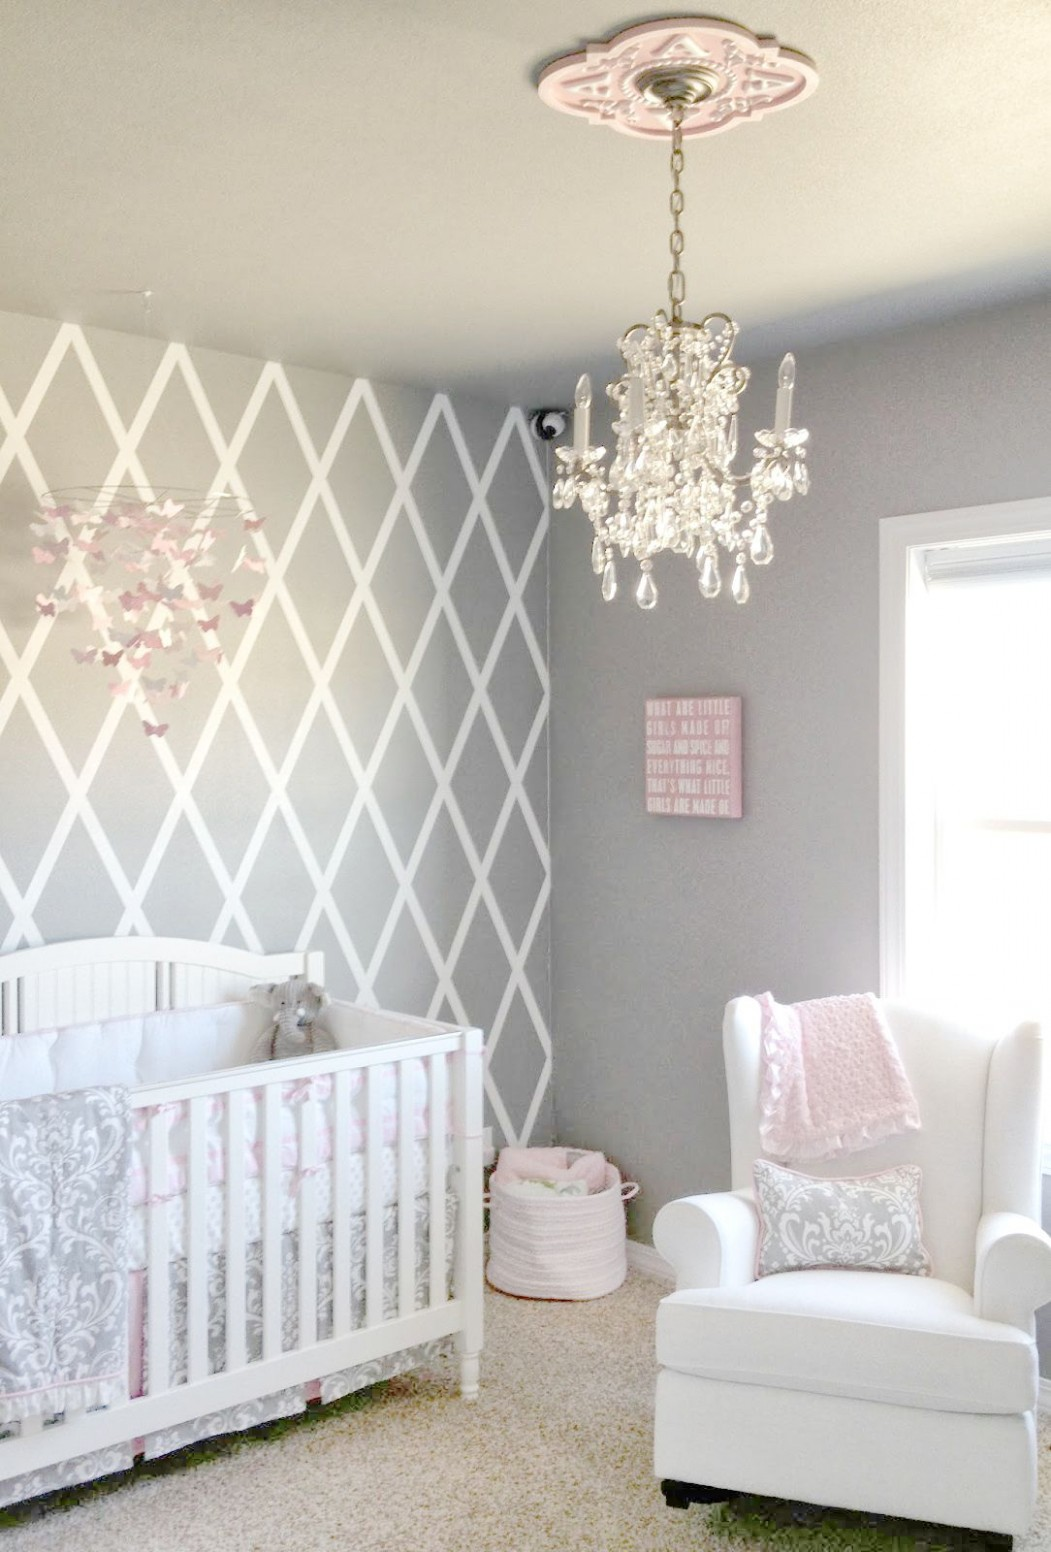 Pink and Gray Baby Bedding, Girl Baby Bedding  Baby girl room  - Baby Room Wall Ideas